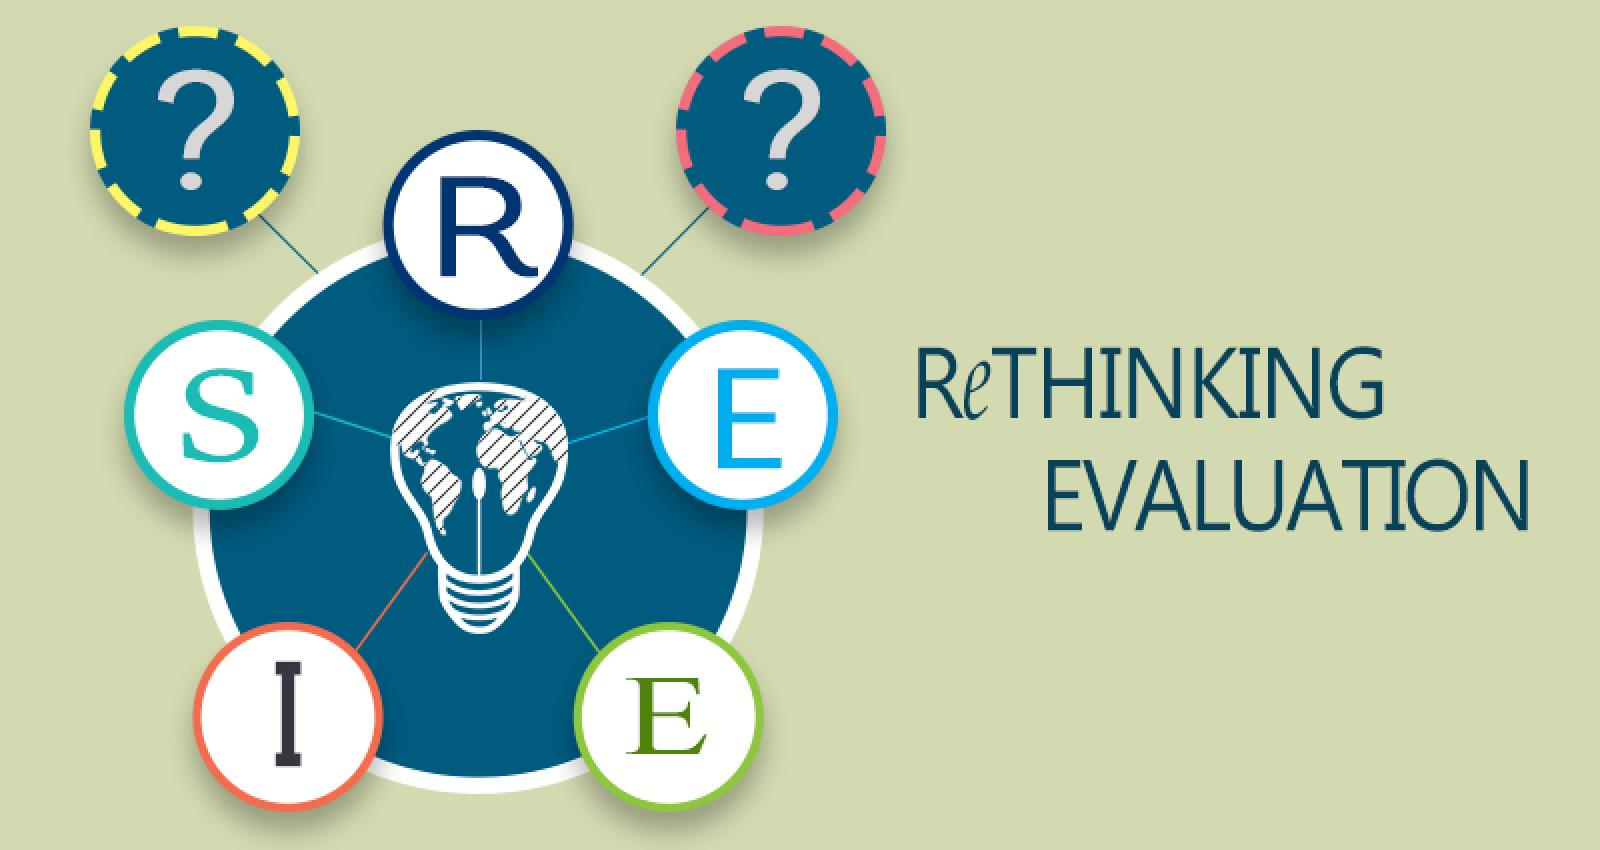 Rethinking Evaluation: Agility and Responsiveness are Key to Success